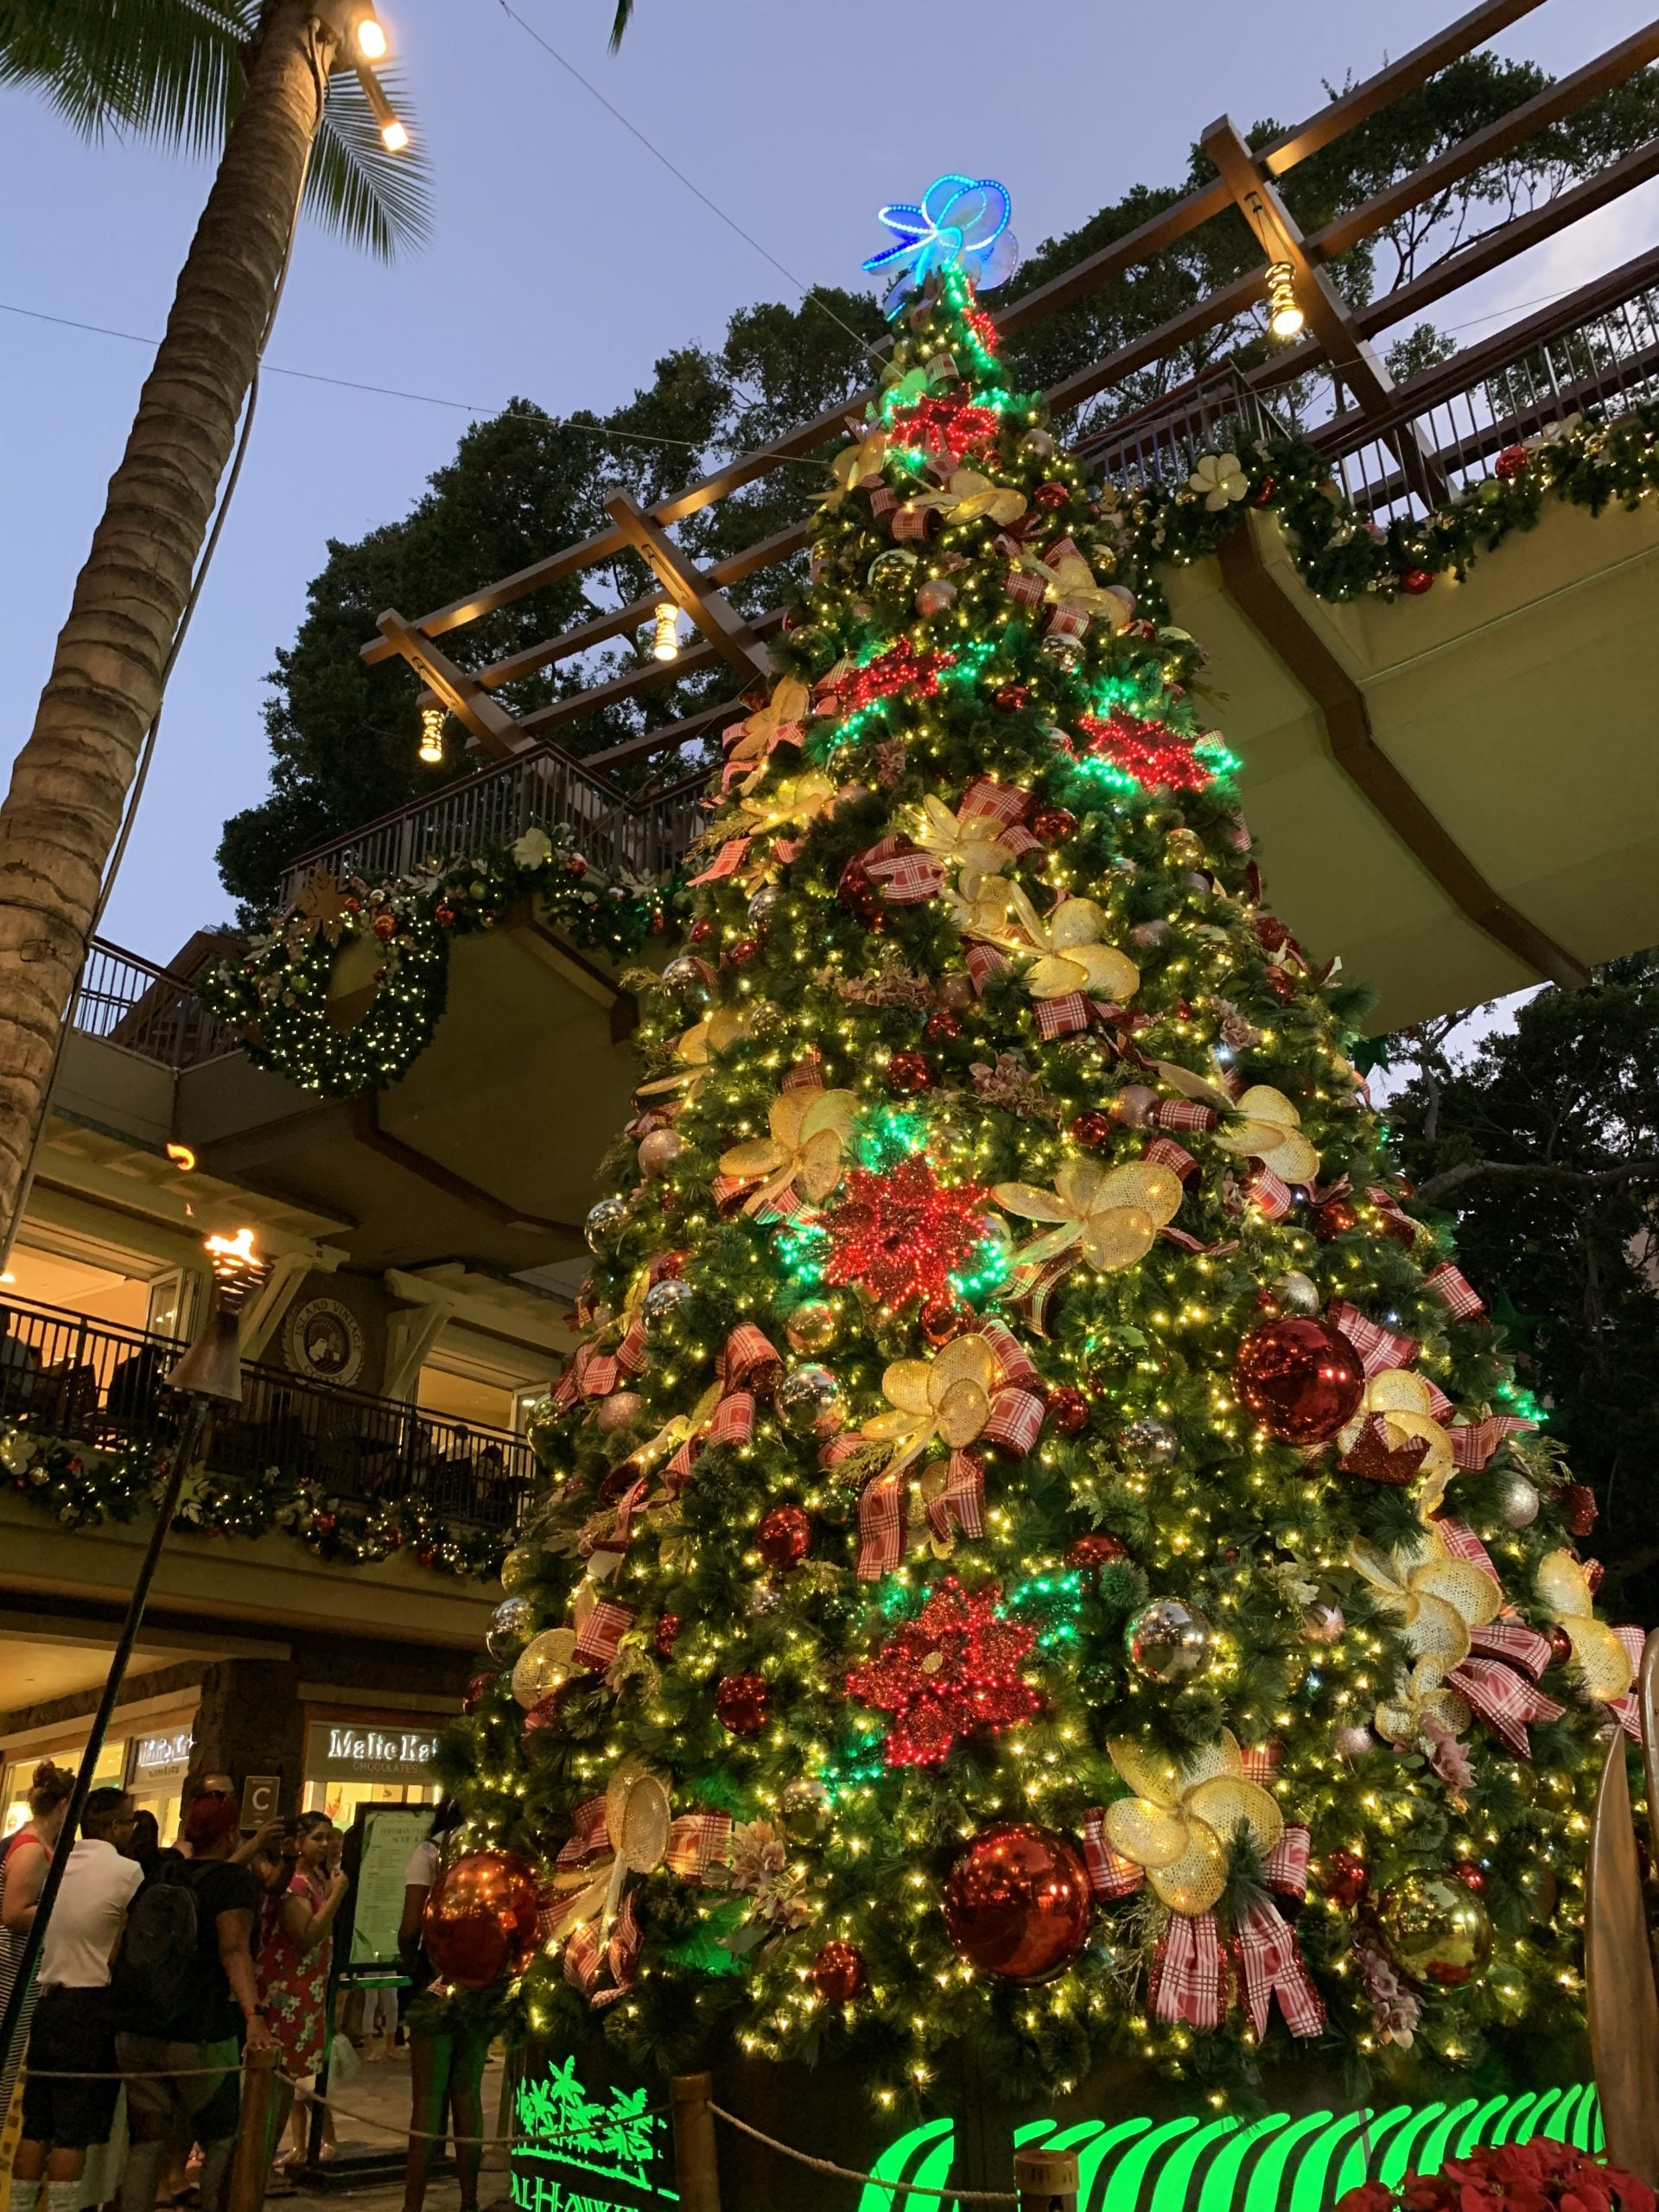 Holiday Events At Royal Hawaiian Center - Get in the holiday spirit with festive events for the whole family at Honolulu's Royal Hawaiian Center! | Royal Hawaiian Shopping Center - Christmas In Honolulu - Christmas Events Hawaii - Oahu Christmas Events #oahu #hawaii #royalhawaiiancenter